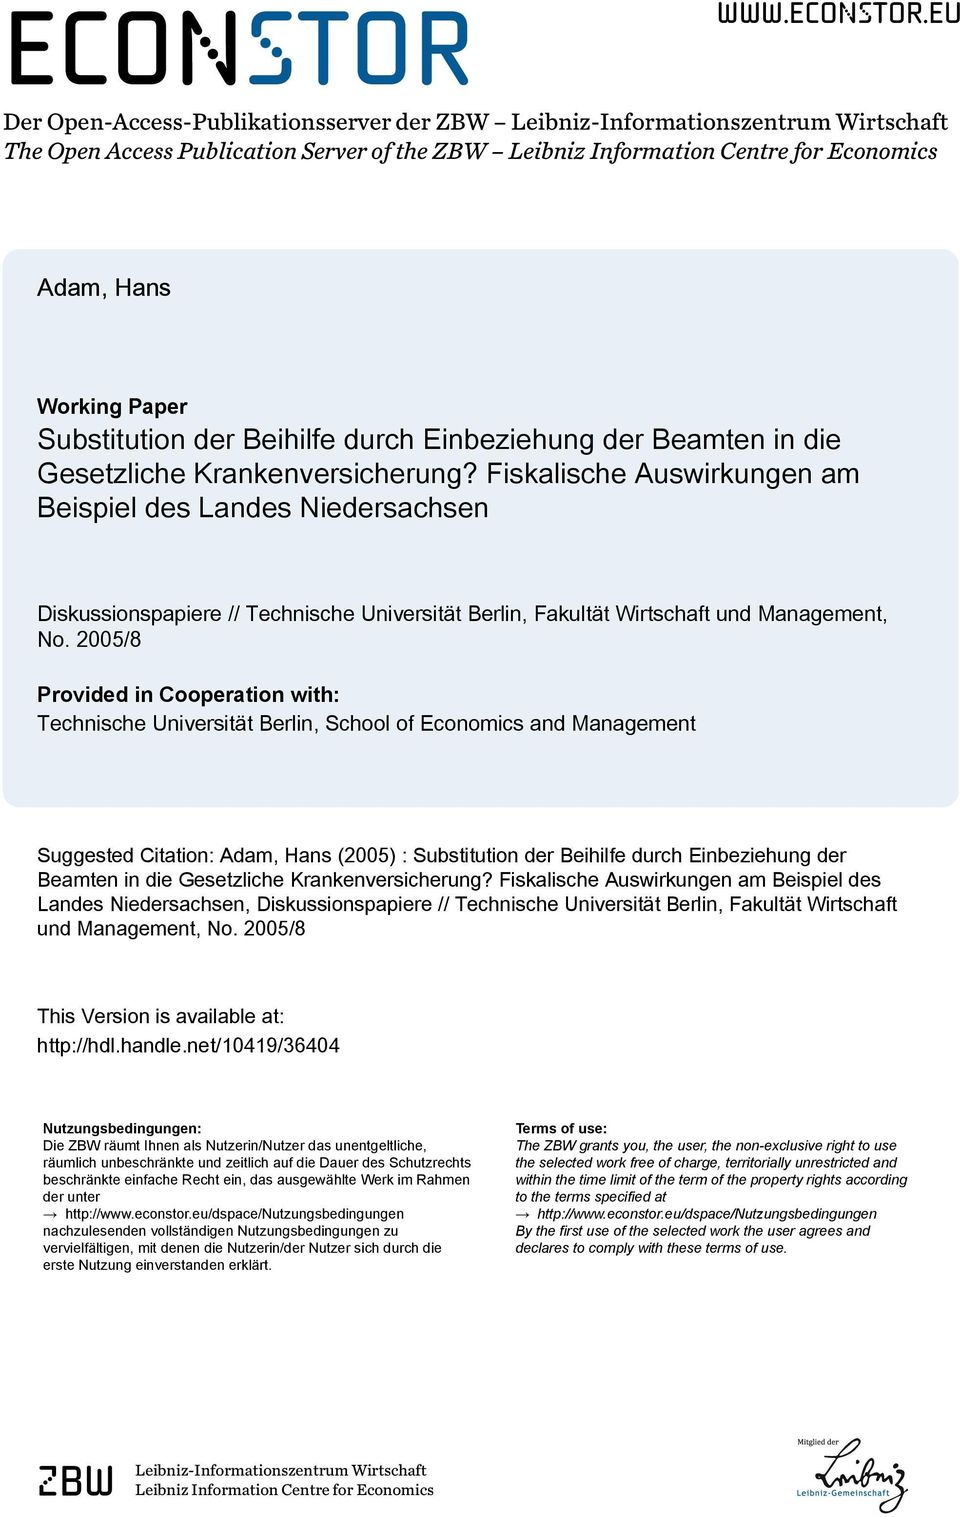 eu Der Open-Access-Publikationsserver der ZBW Leibniz-Informationszentrum Wirtschaft The Open Access Publication Server of the ZBW Leibniz Information Centre for Economics Adam, Hans Working Paper